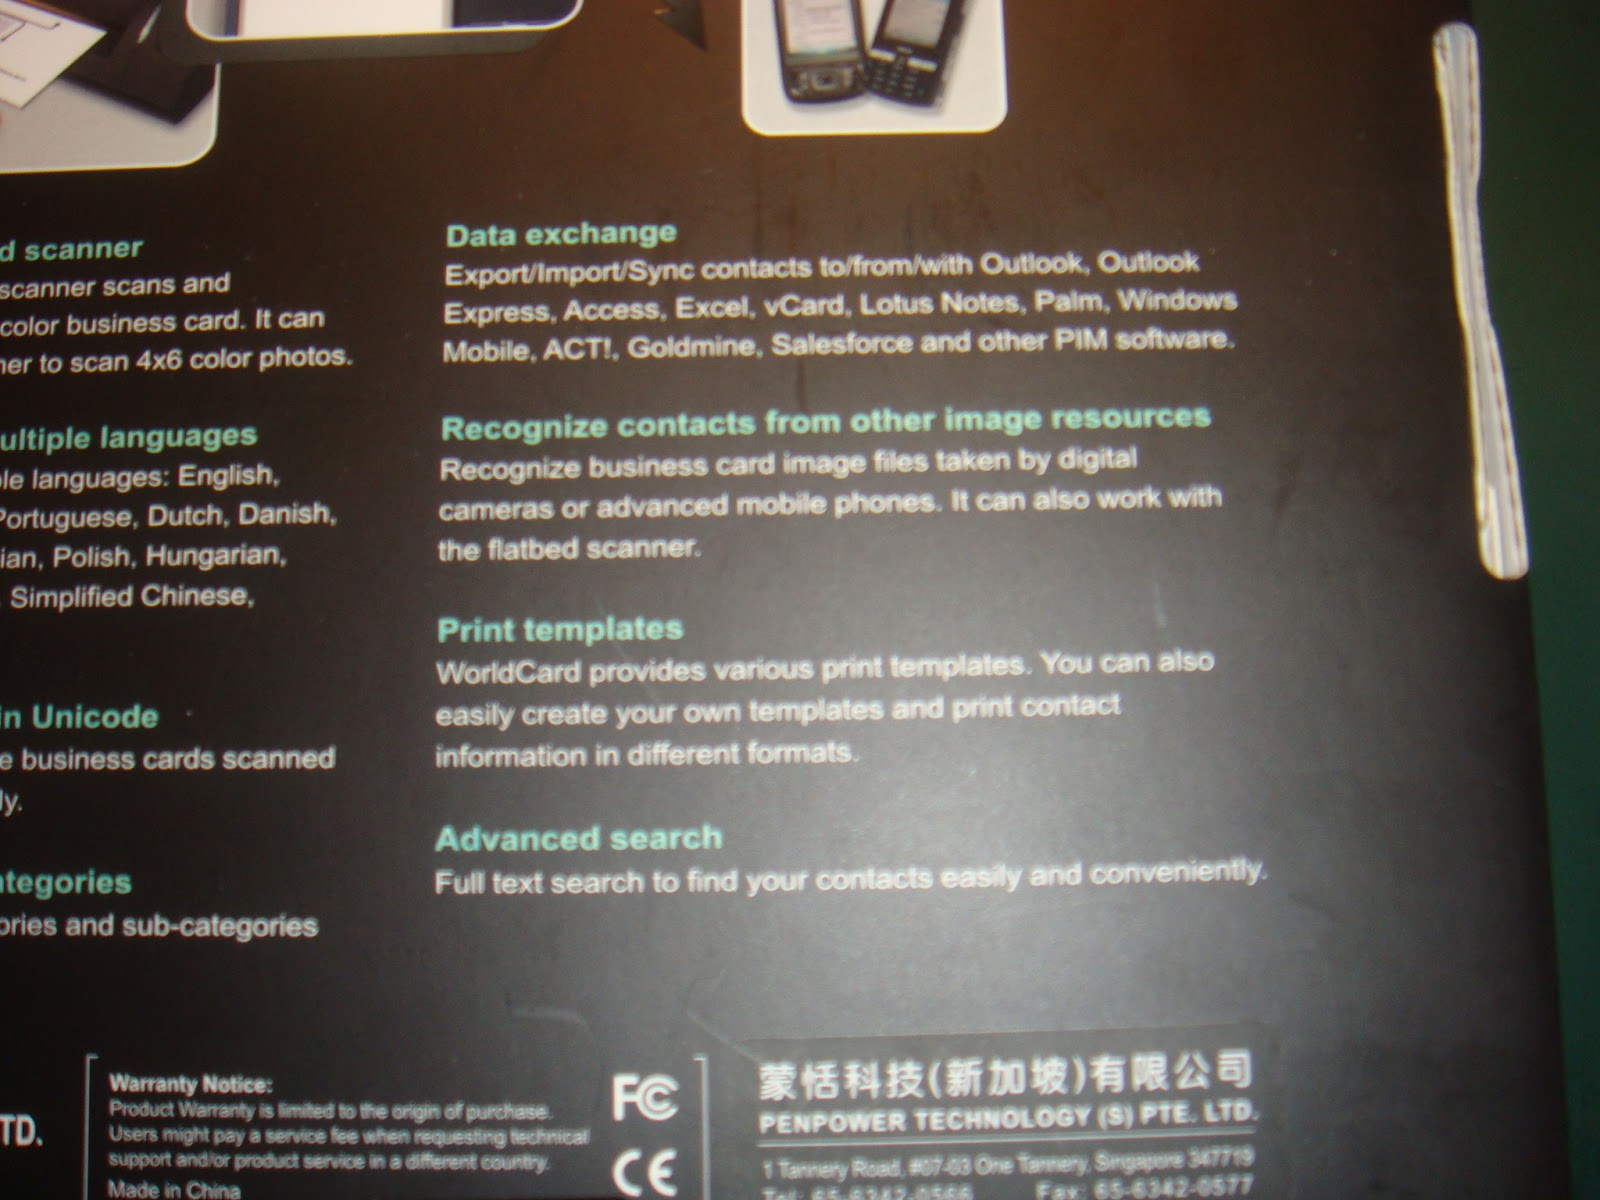 Pc parts and accessories penpower worldcard business card scanner according to the details i can do exactly that and it supports multiple pim reheart Gallery